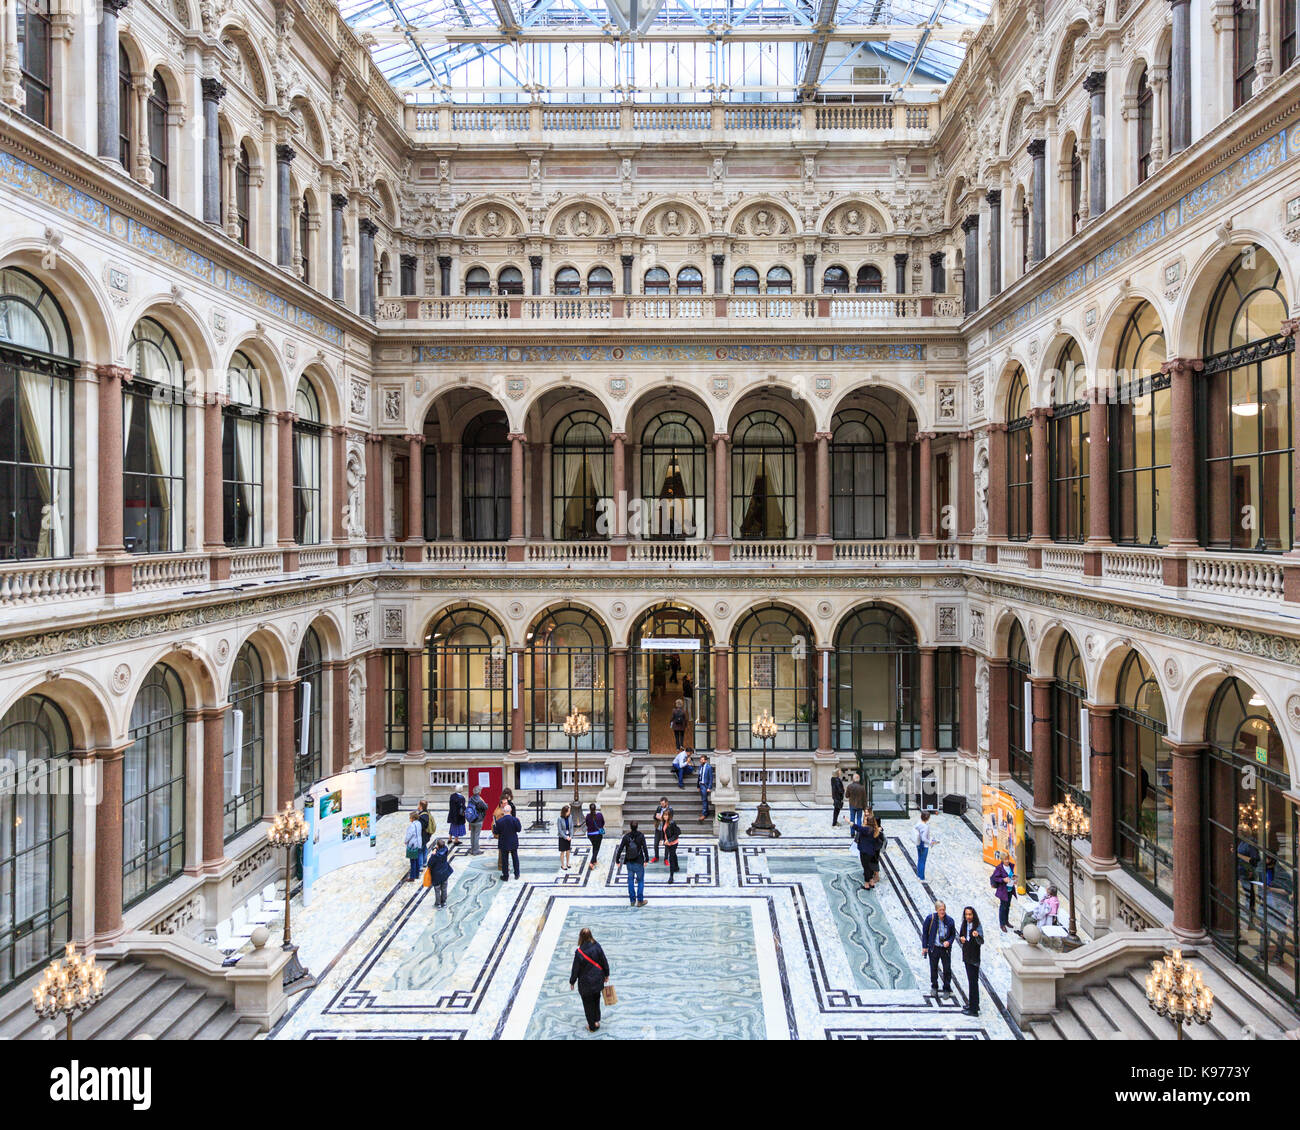 The durbar court at the former india office british foreign and stock photo 160584479 alamy - British foreign commonwealth office ...